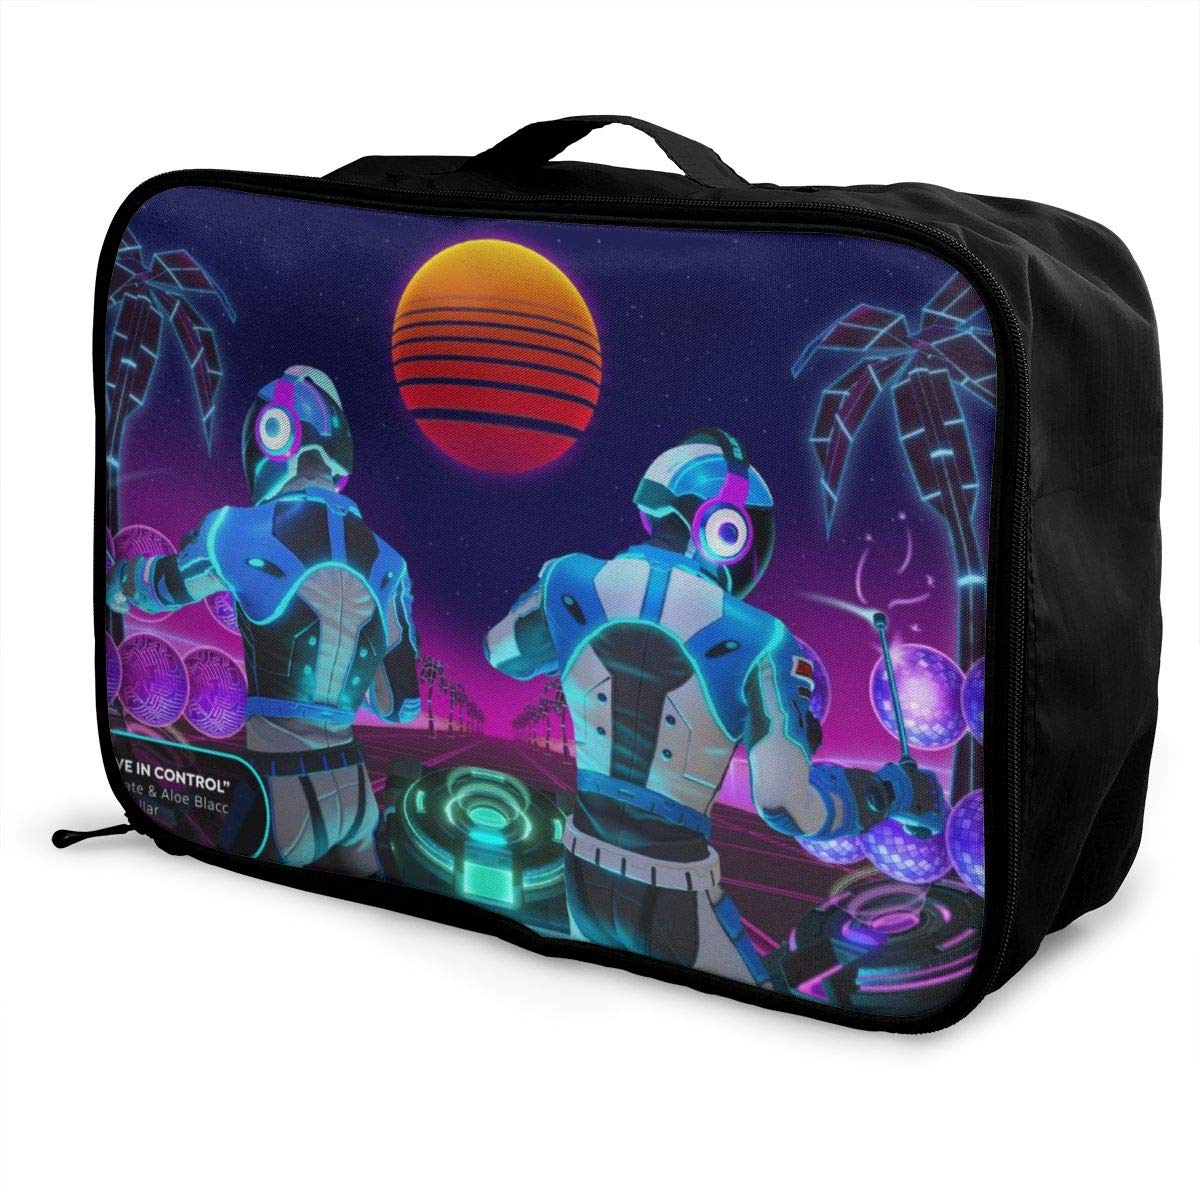 BOKAIKAI1306 Handsome Daft Punk Combination Unisex Adults Fashion Lightweight Large Capacity Portable Large Travel Duffel Bag Mens Woman Luggage Bag 3D Printing DIY Boarding Box